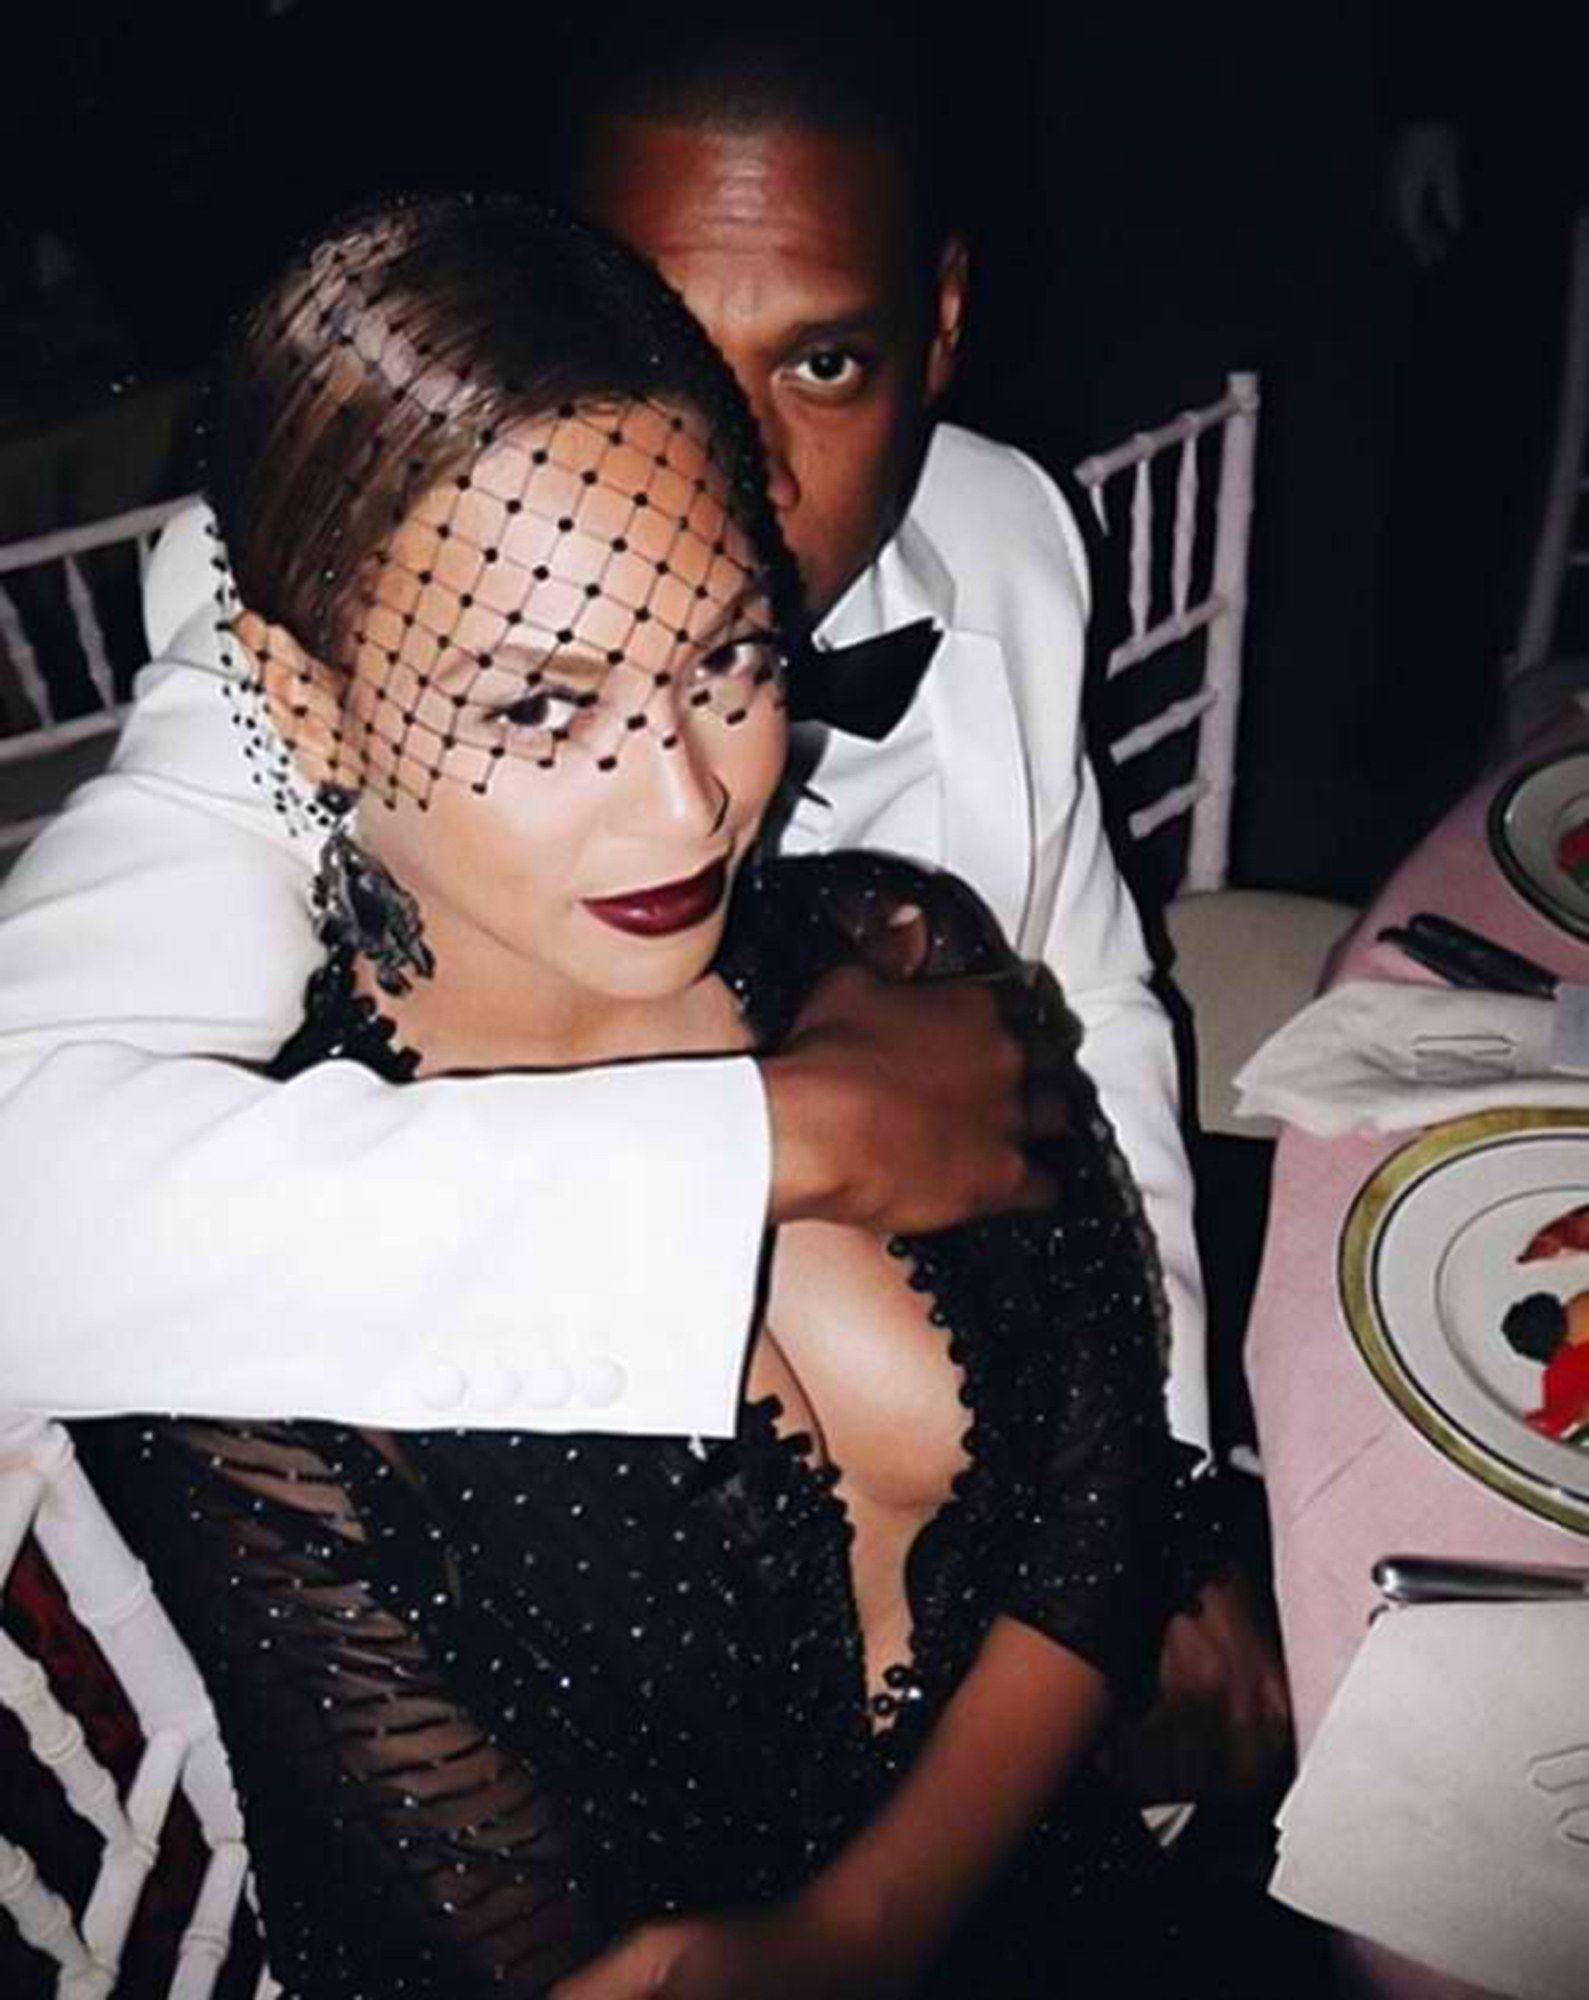 Beyoncé and Jay Z's Relationship: A Look Back in Honor of Their Anniversary